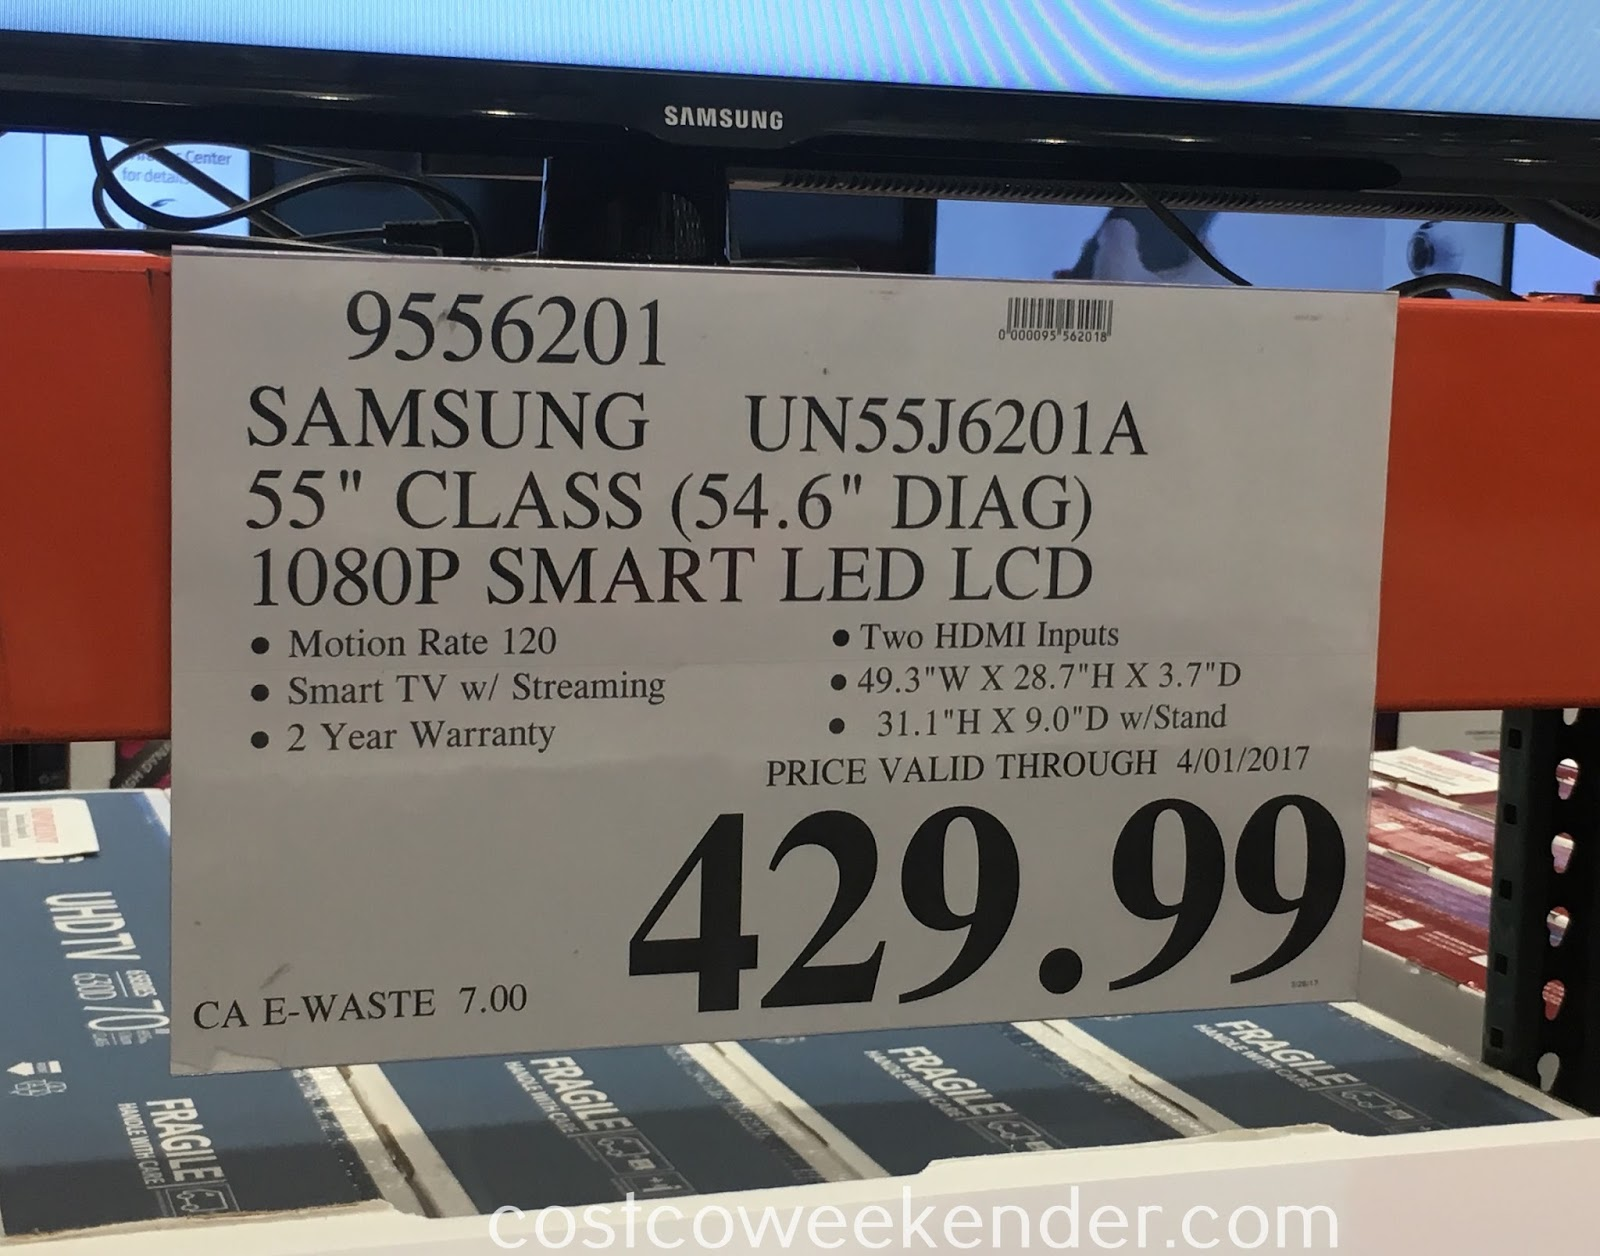 Deal for the Samsung UN55J6201A 55in 1080p LED LCD TV at Costco